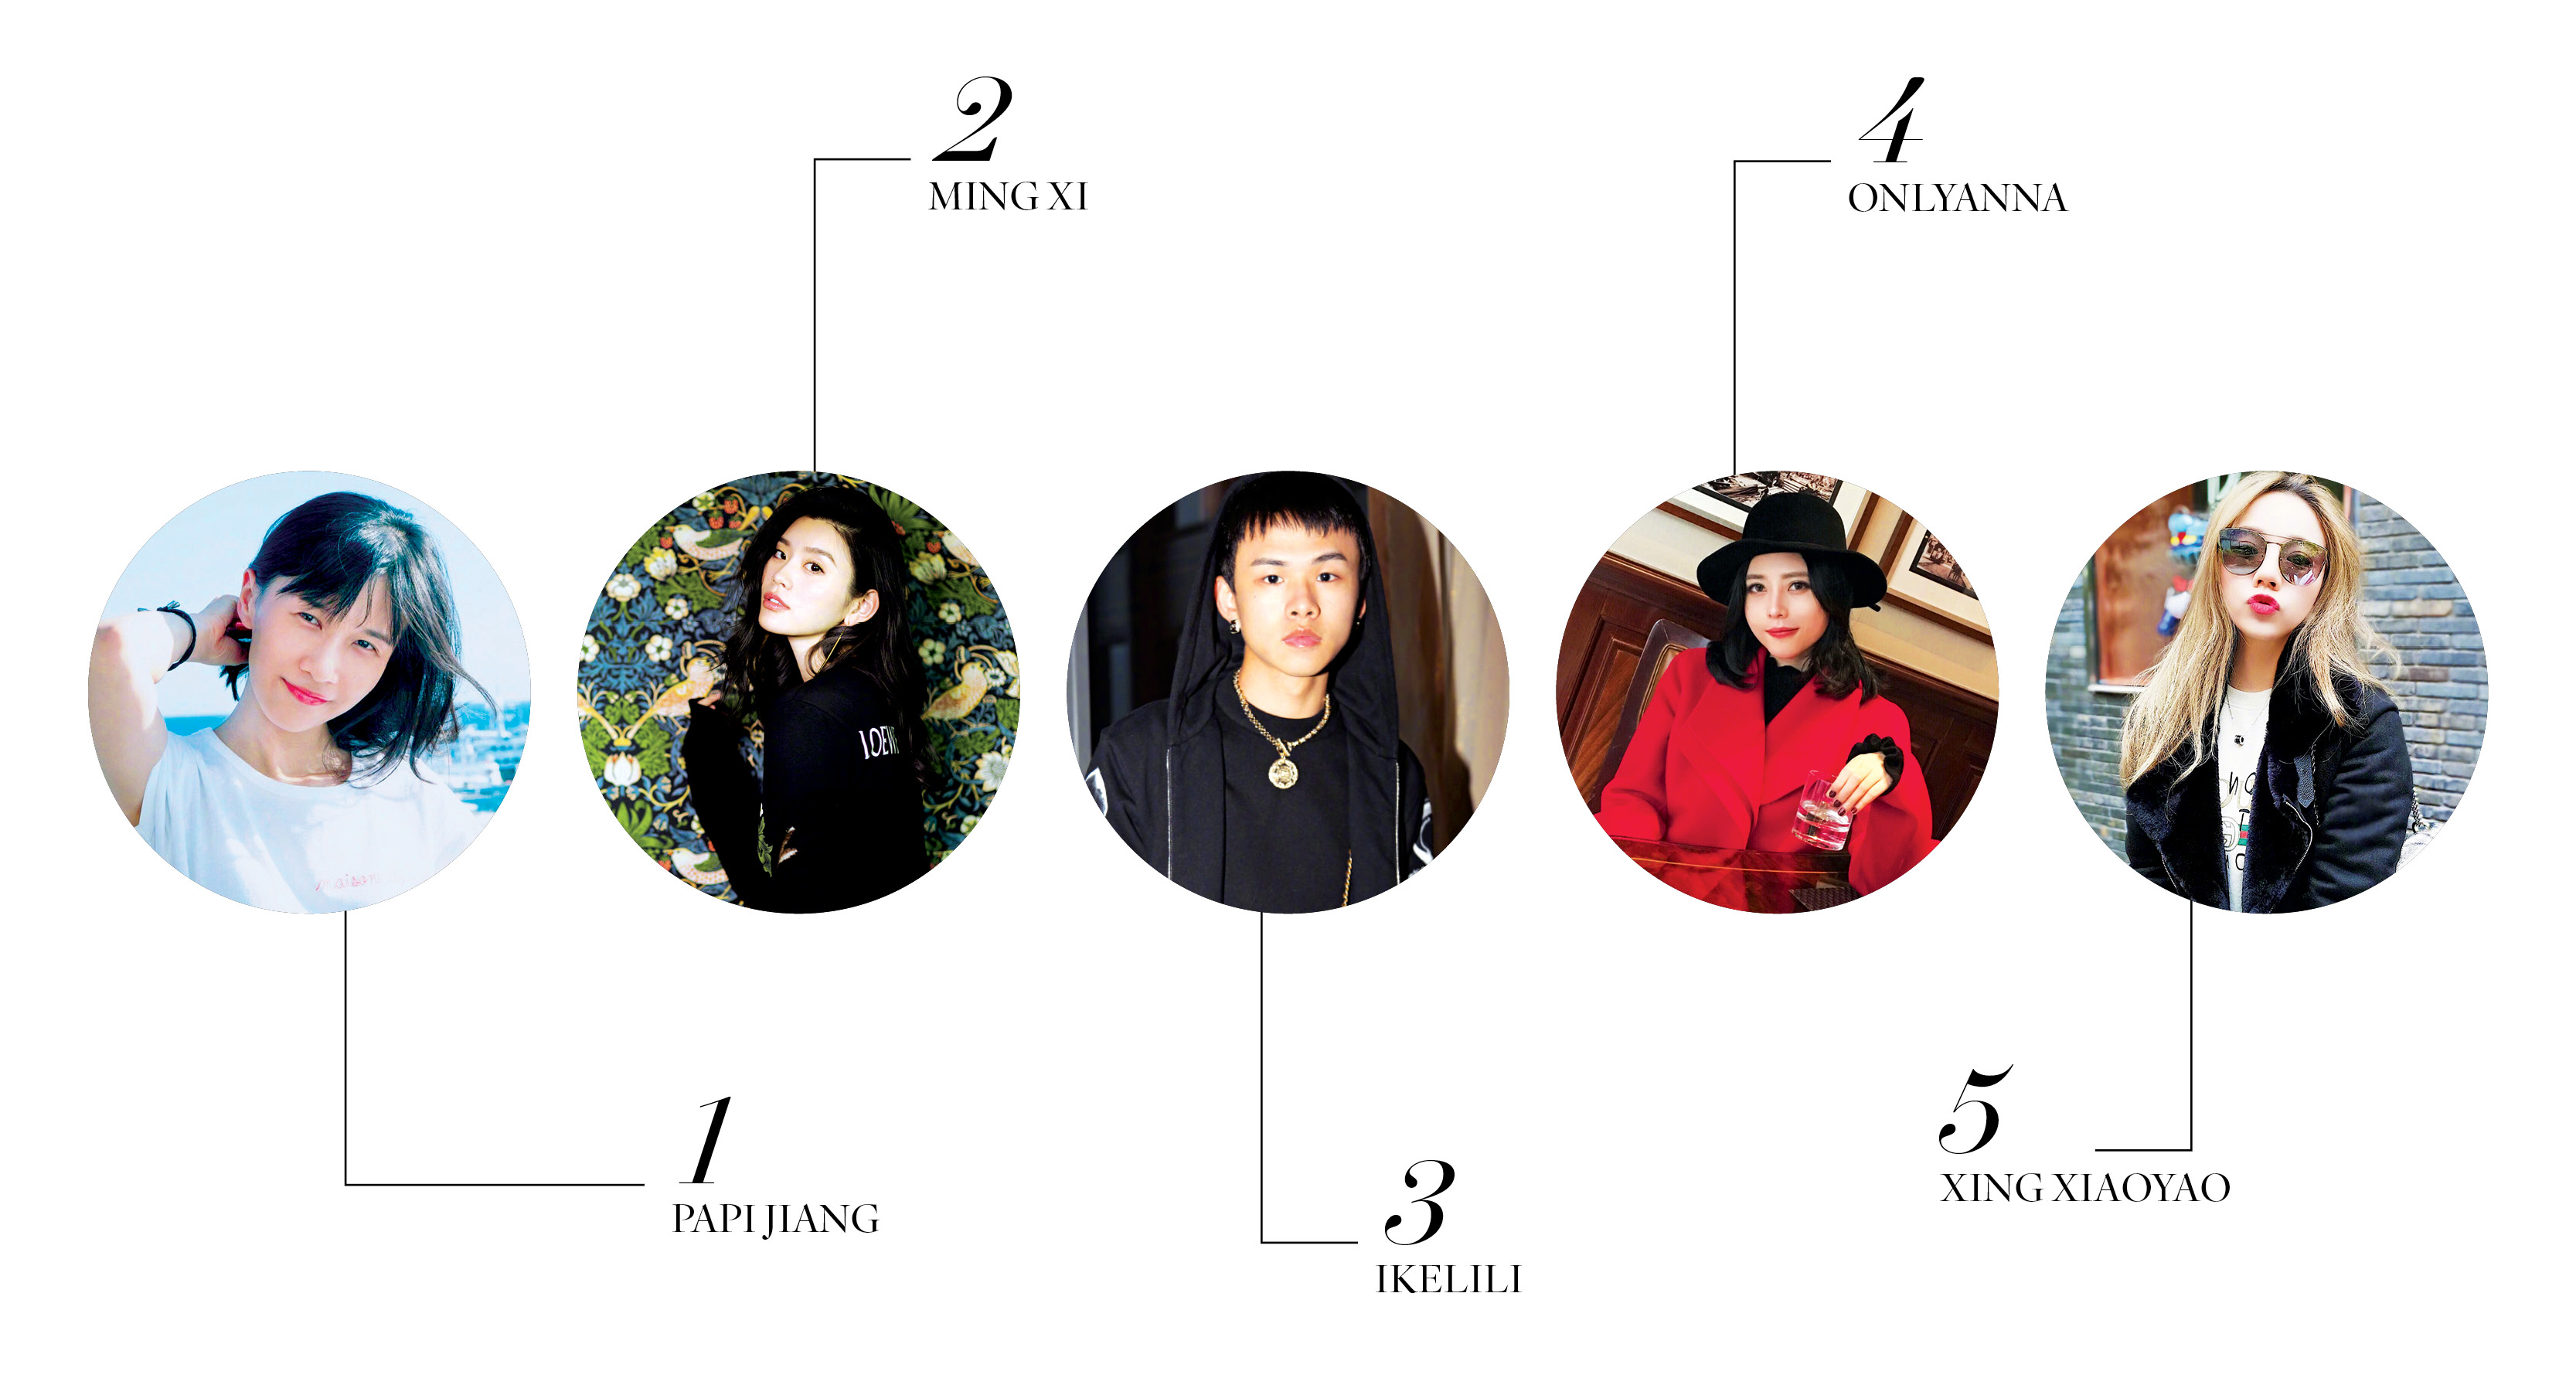 Papi Jiang, Ming Xi, Ikelili, Onlyanna and Xing Xiaoyao round out the top five spots on the list